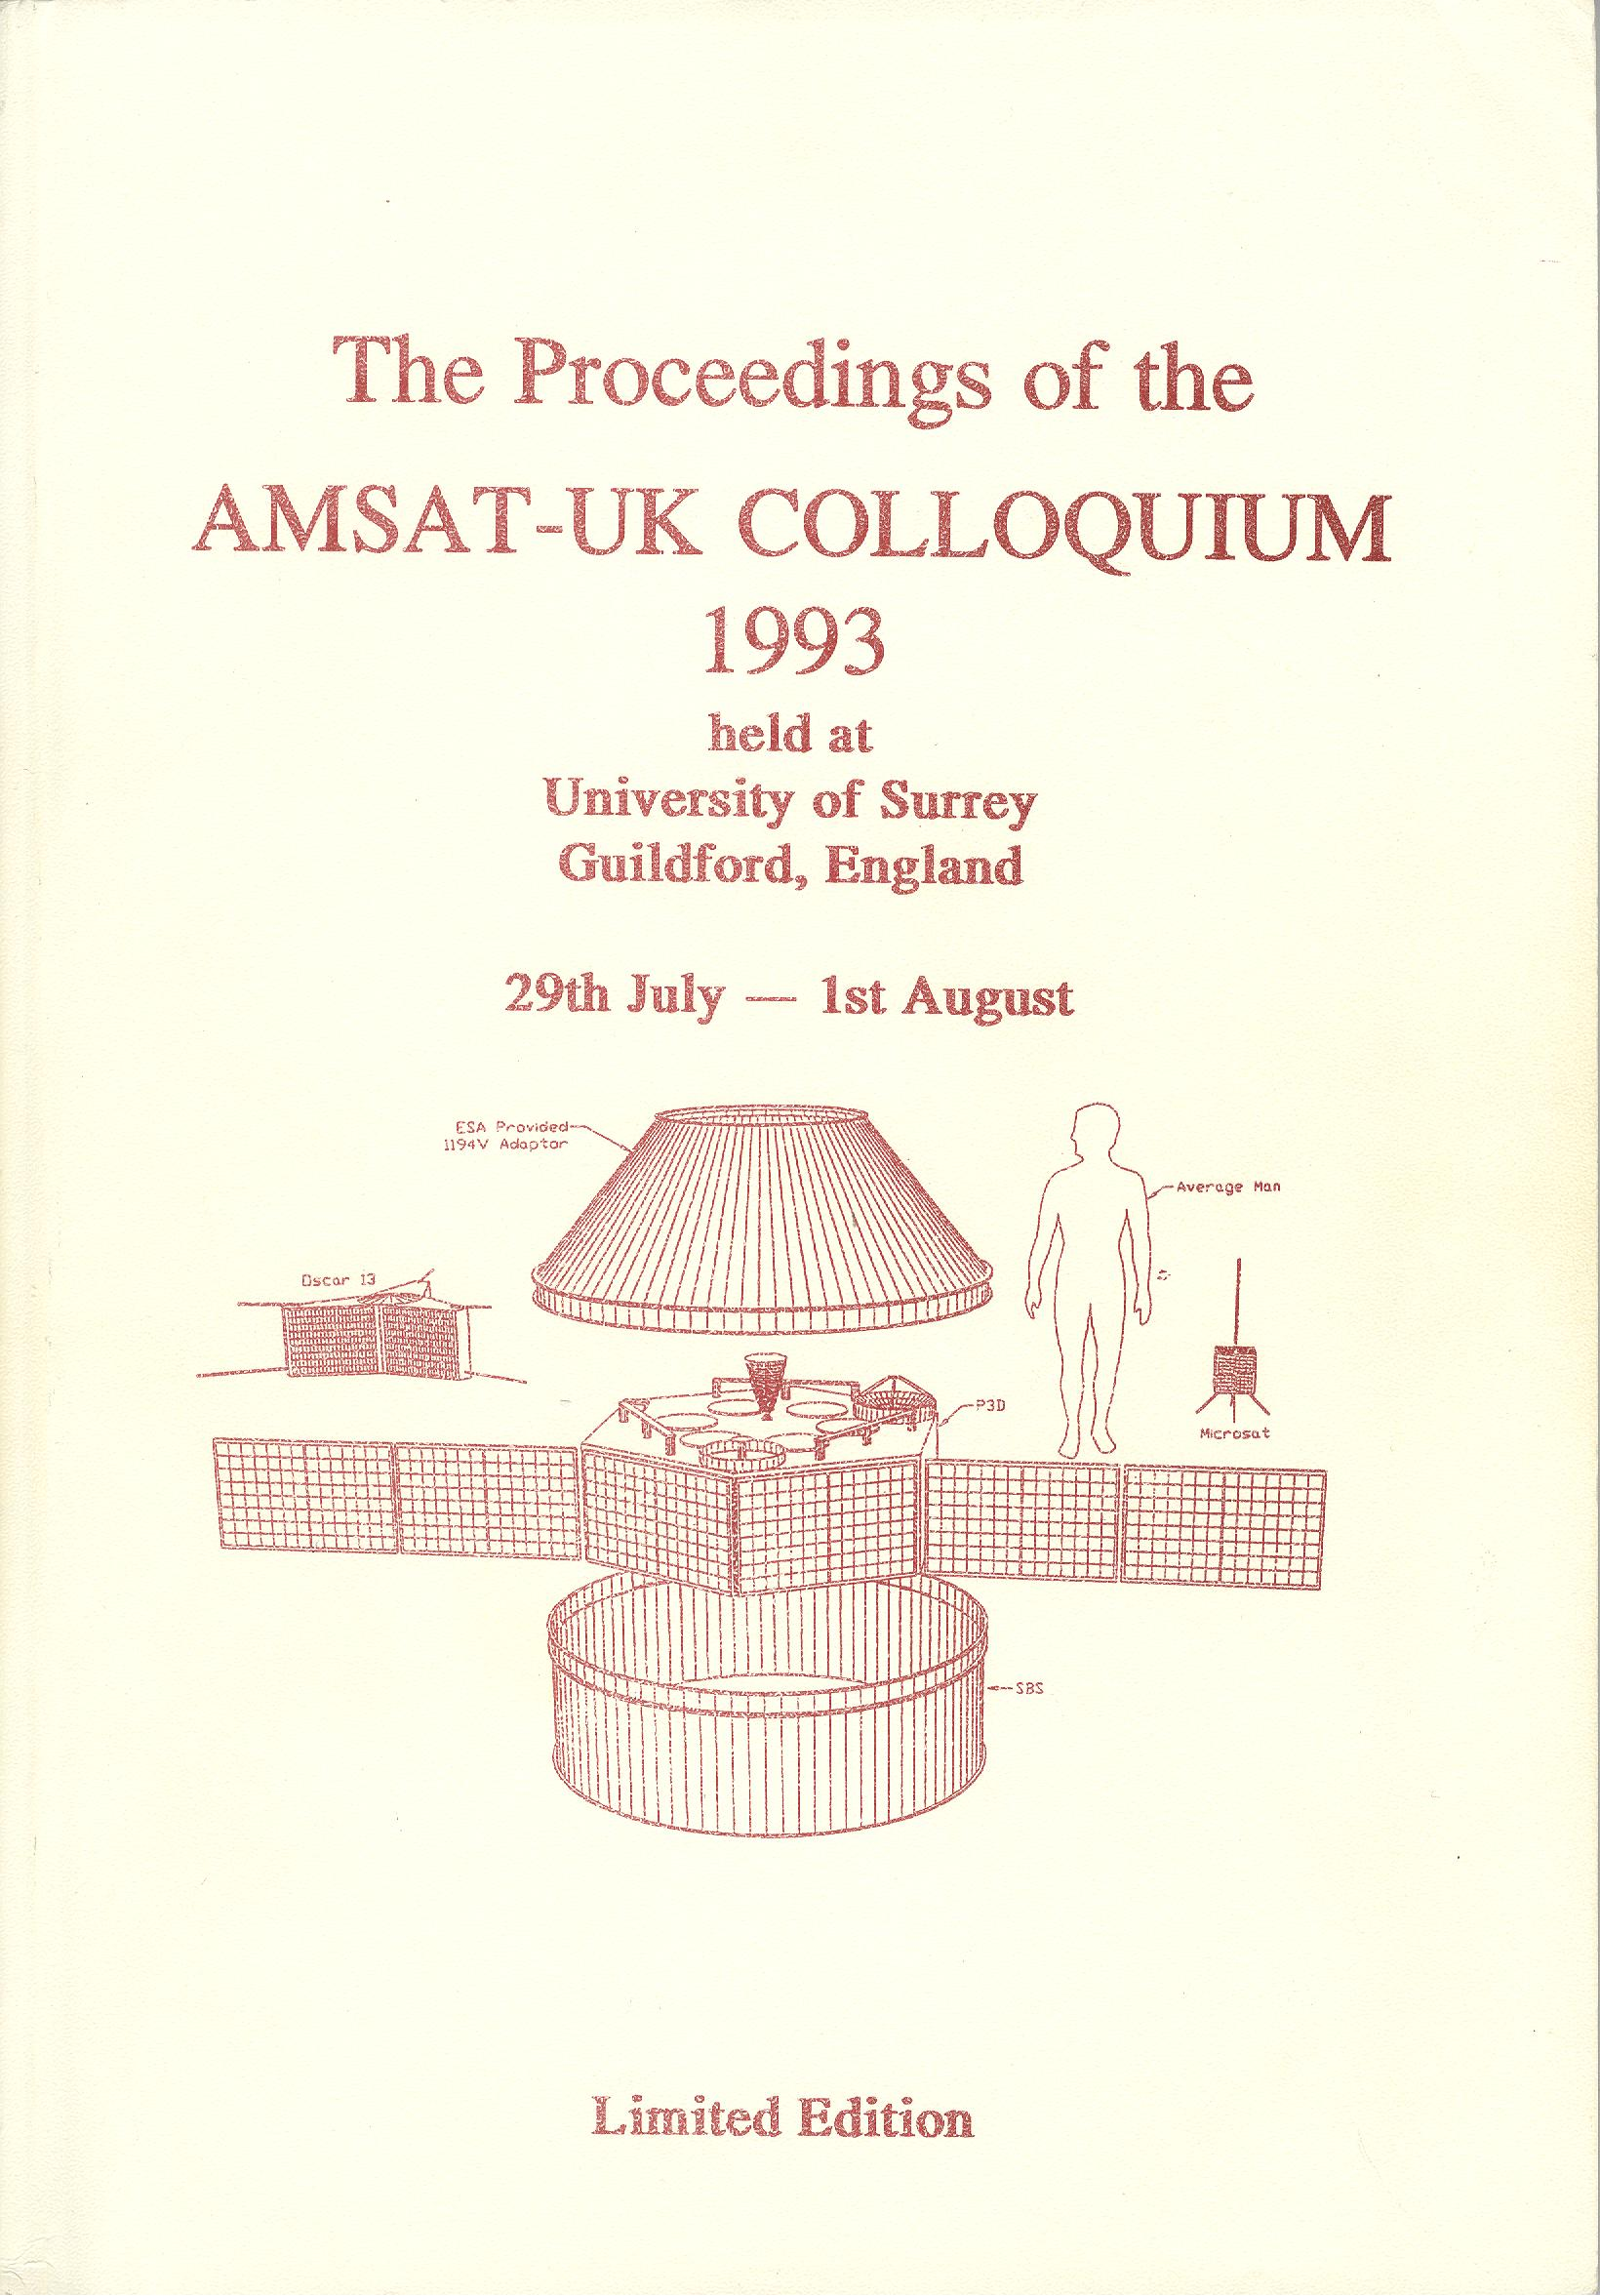 The Proceedings of the AMSAT-UK Colloquium 1993